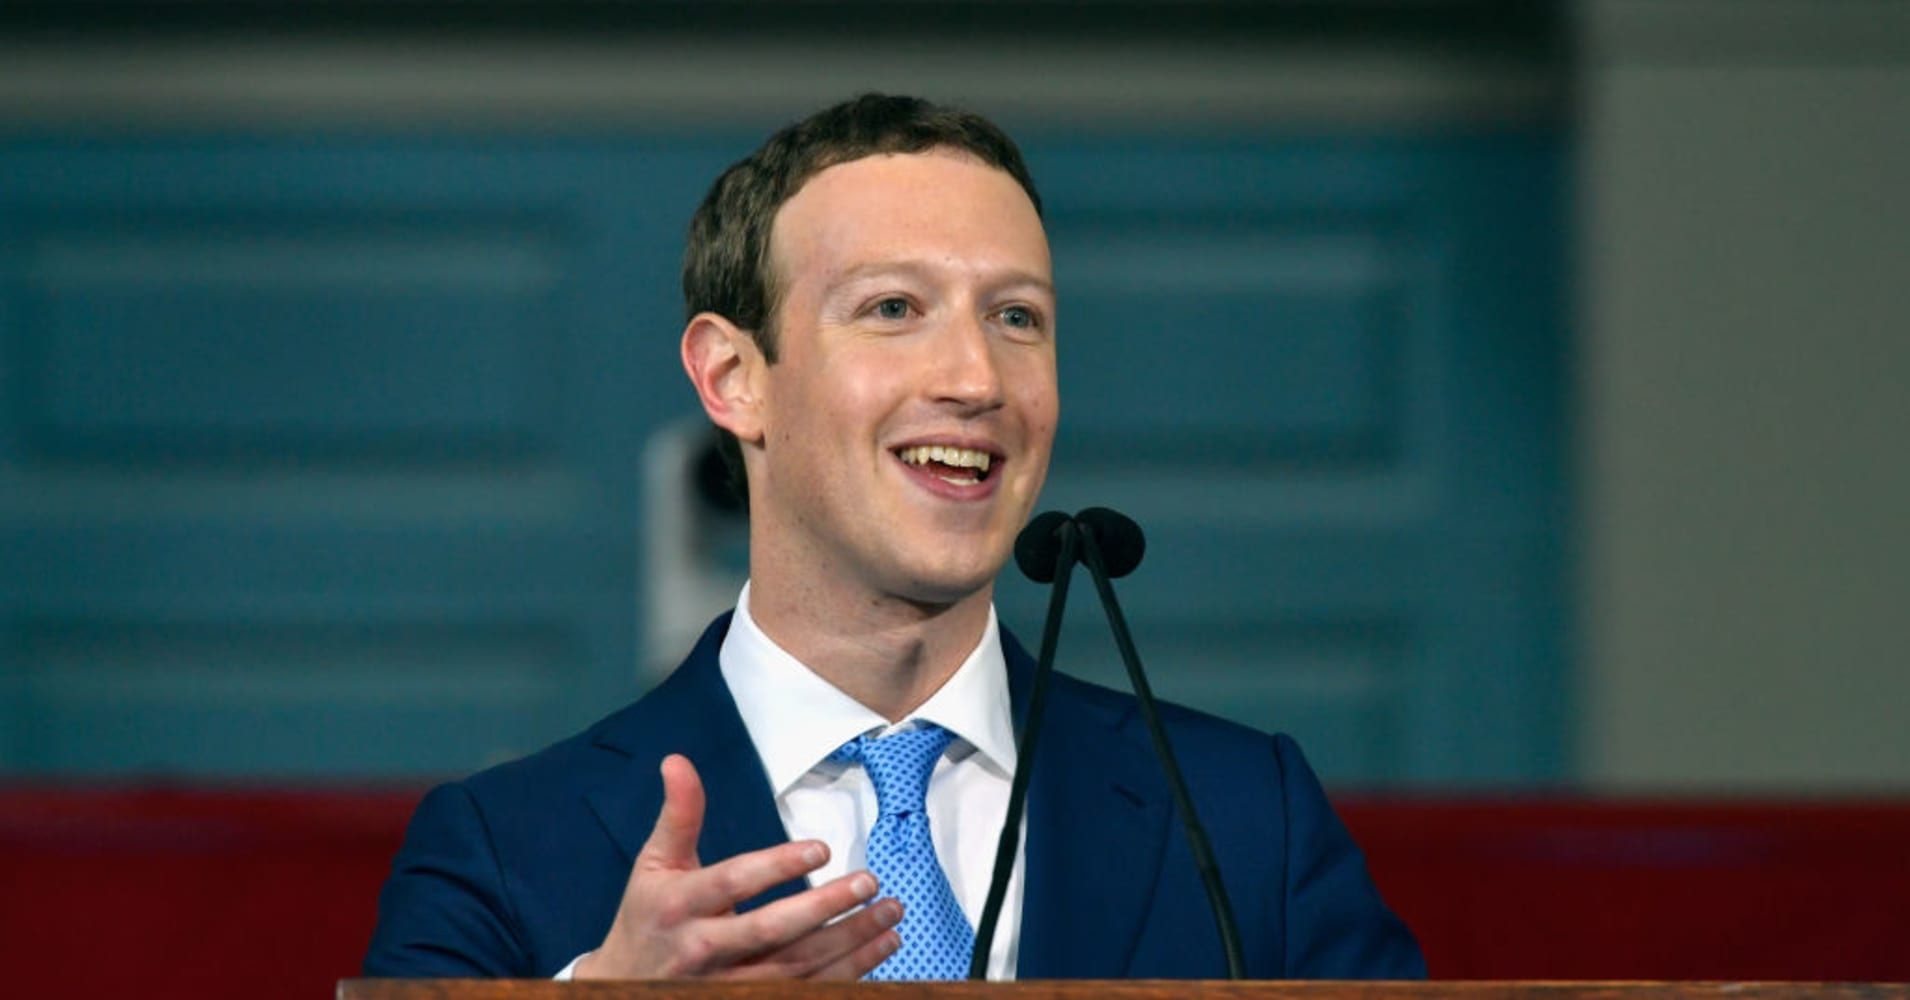 Mark Zuckerberg Tells Harvard Graduates To Embrace Globalism, 'A Sense Of Purpose'